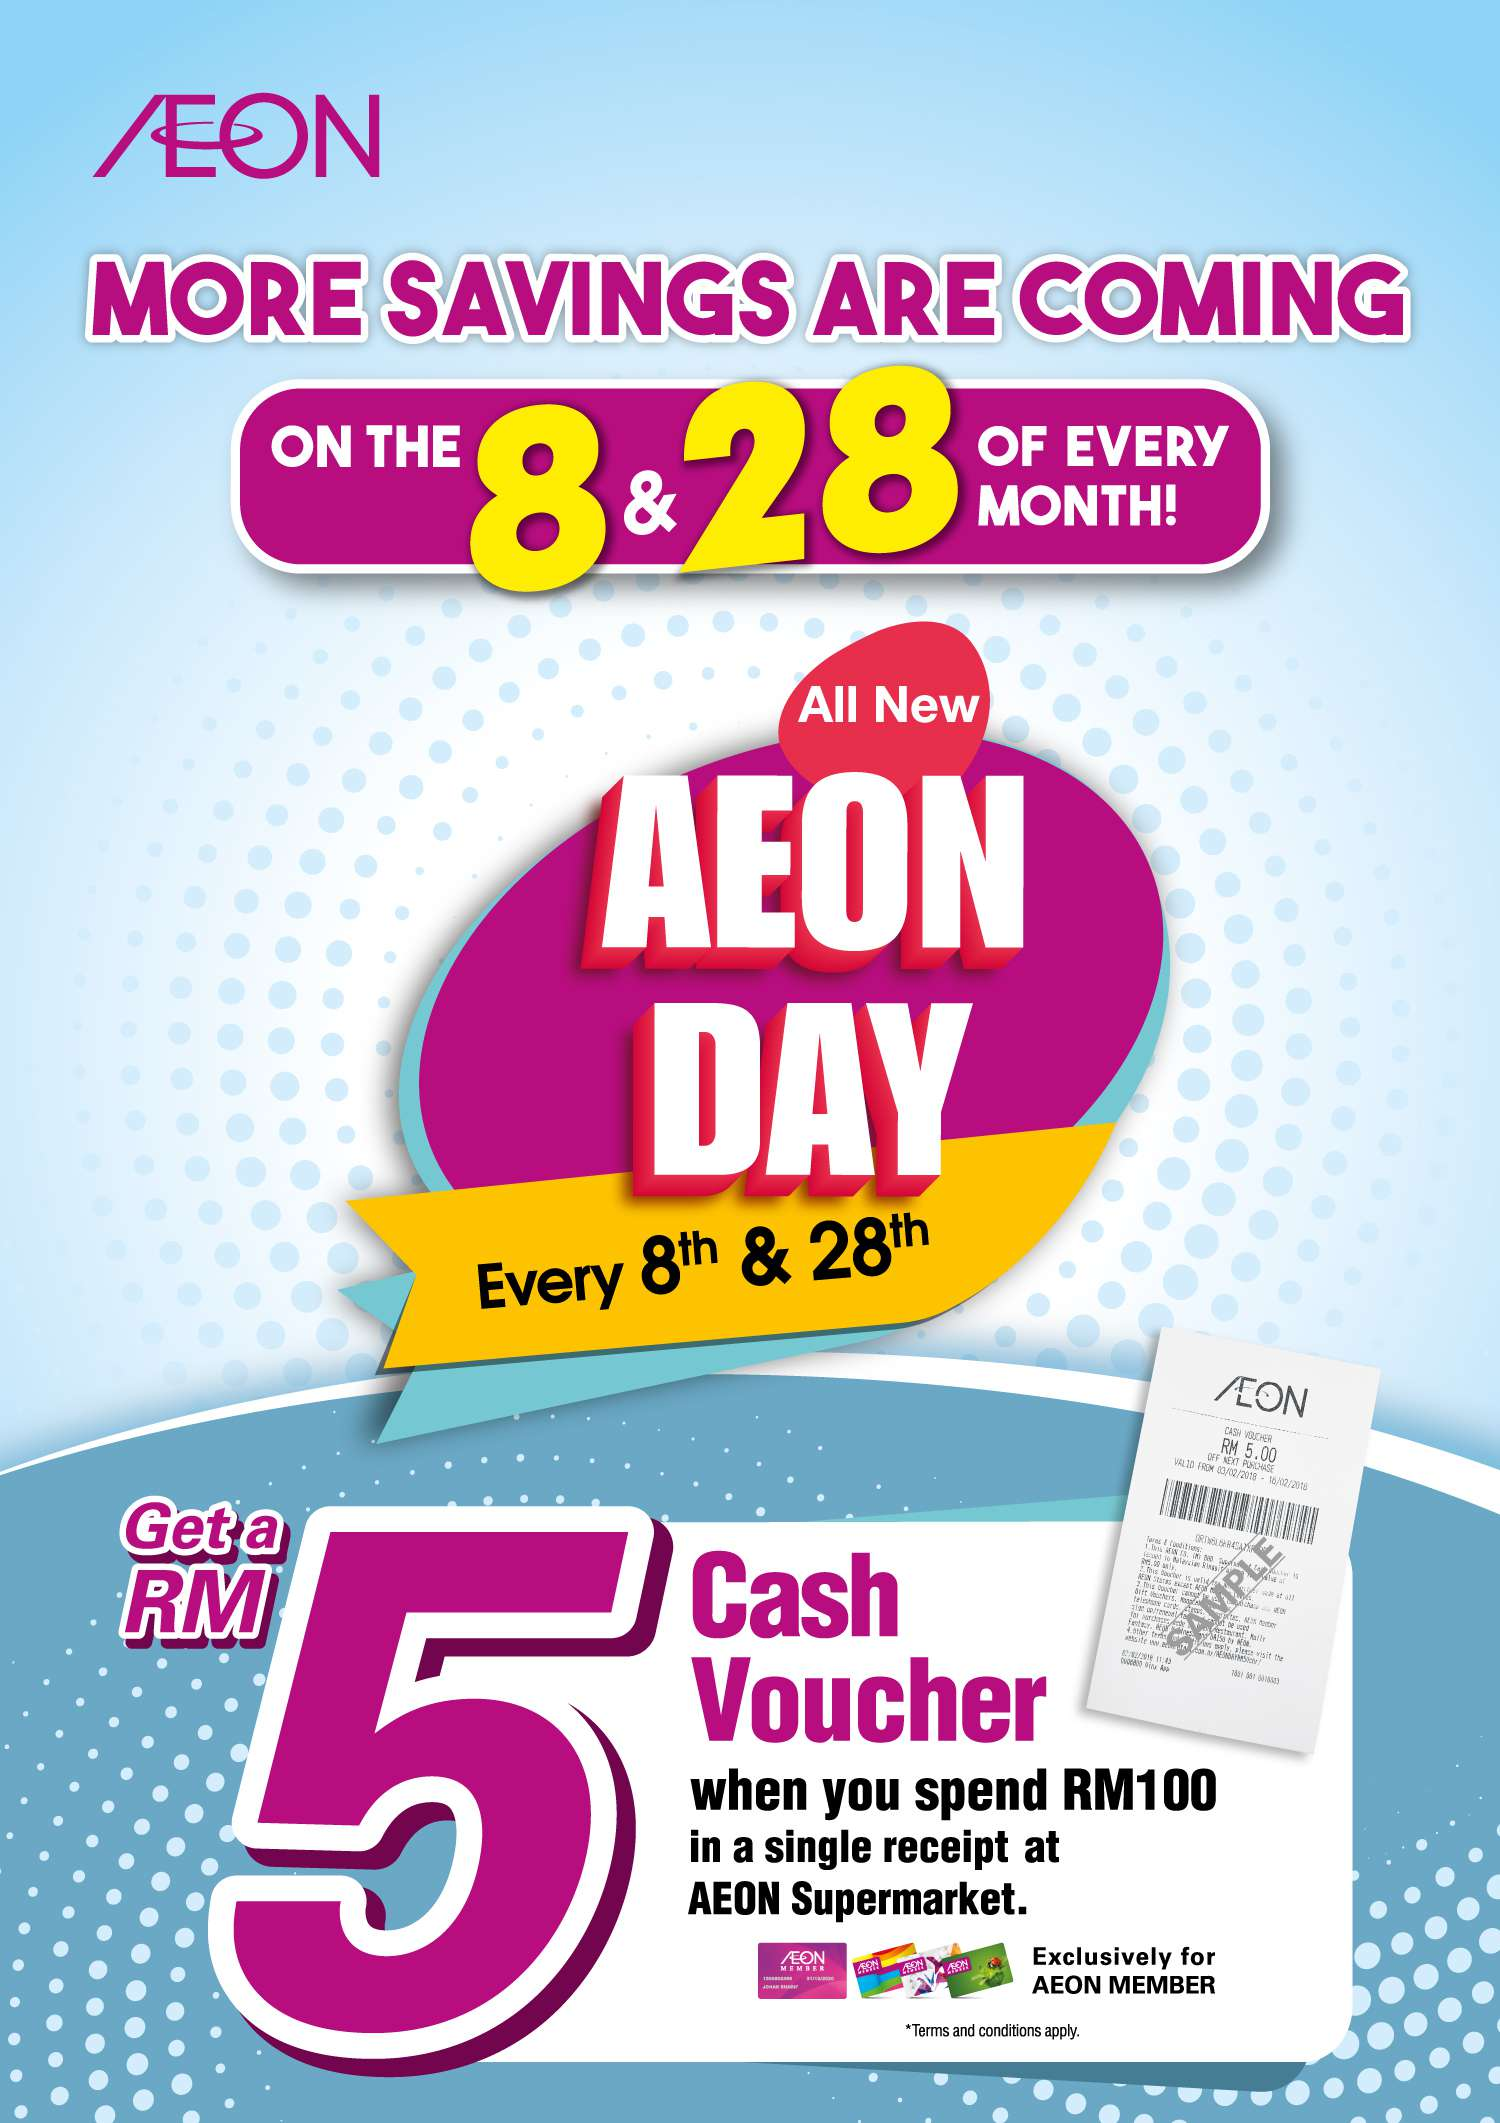 Aeon More Savings Are Coming On the 8 and 28 of Every Month